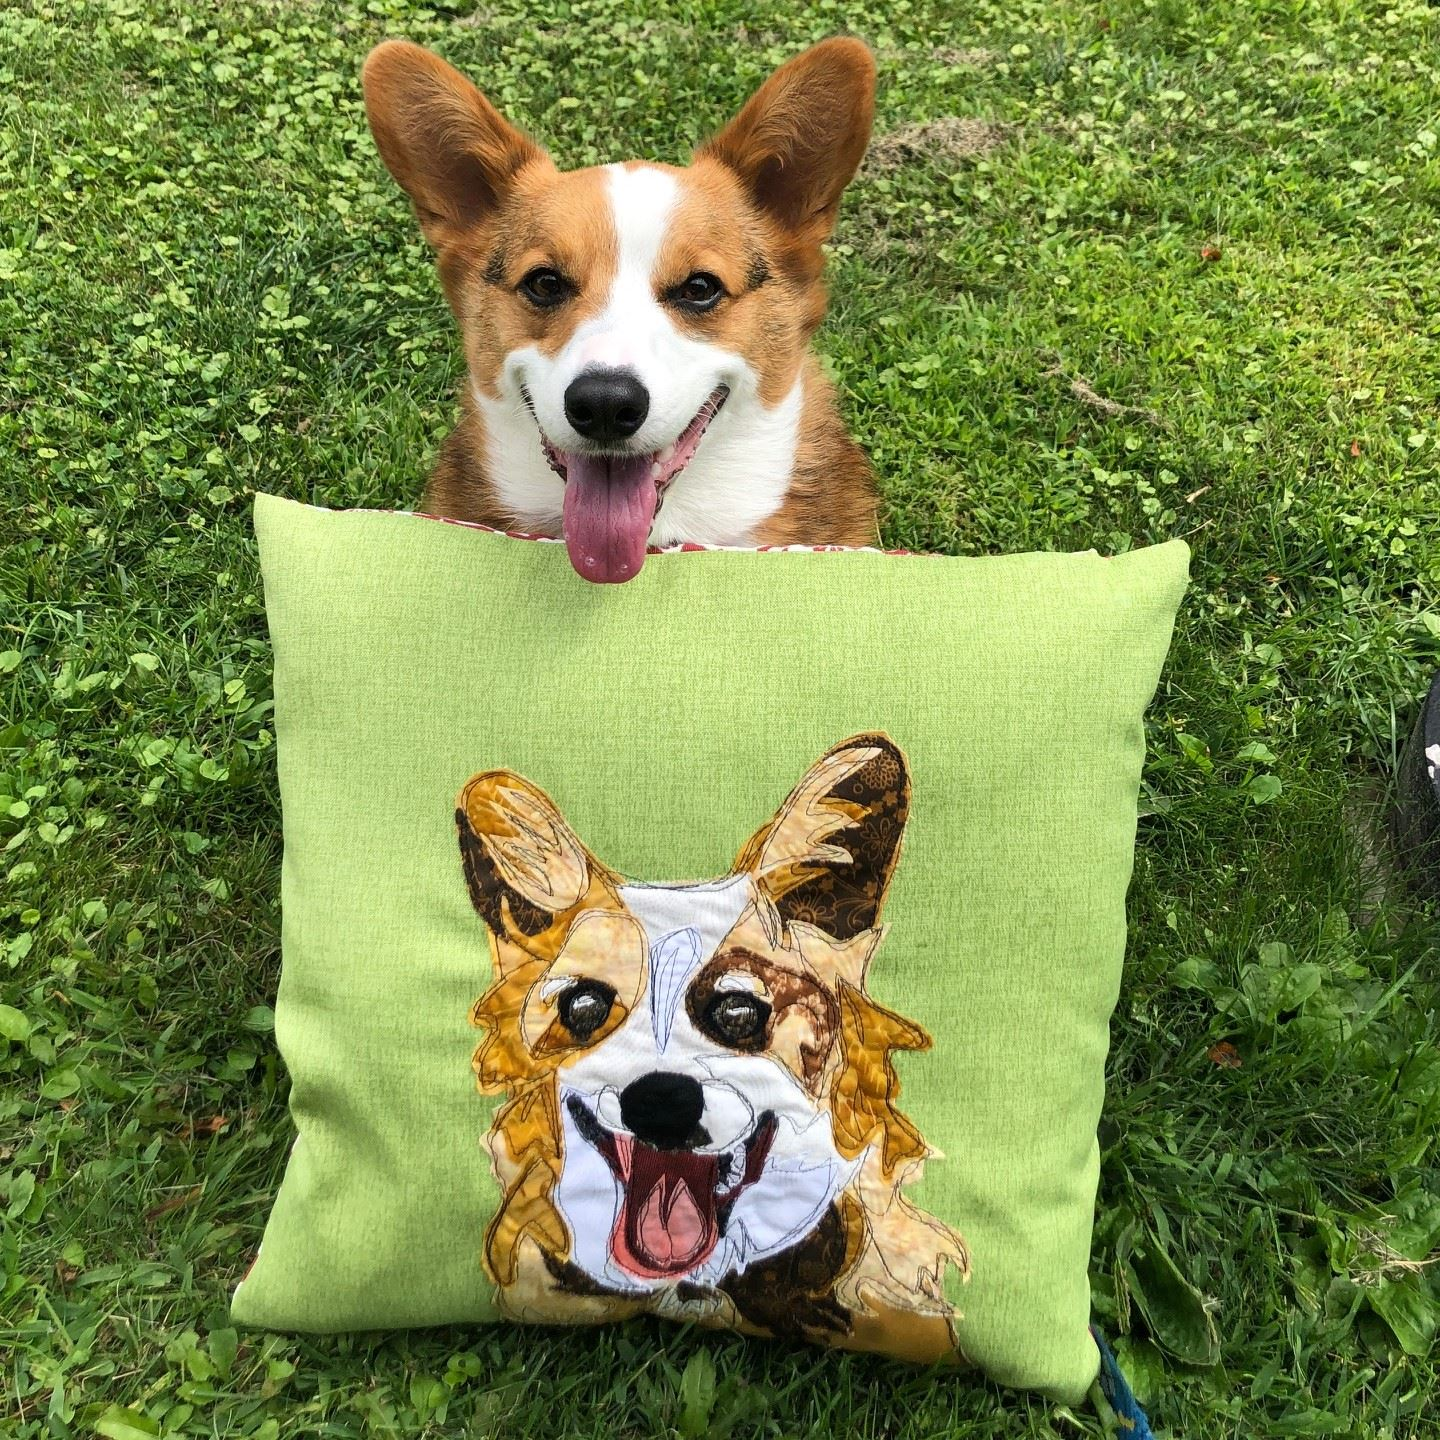 Petey sitting outside with his prize pillow